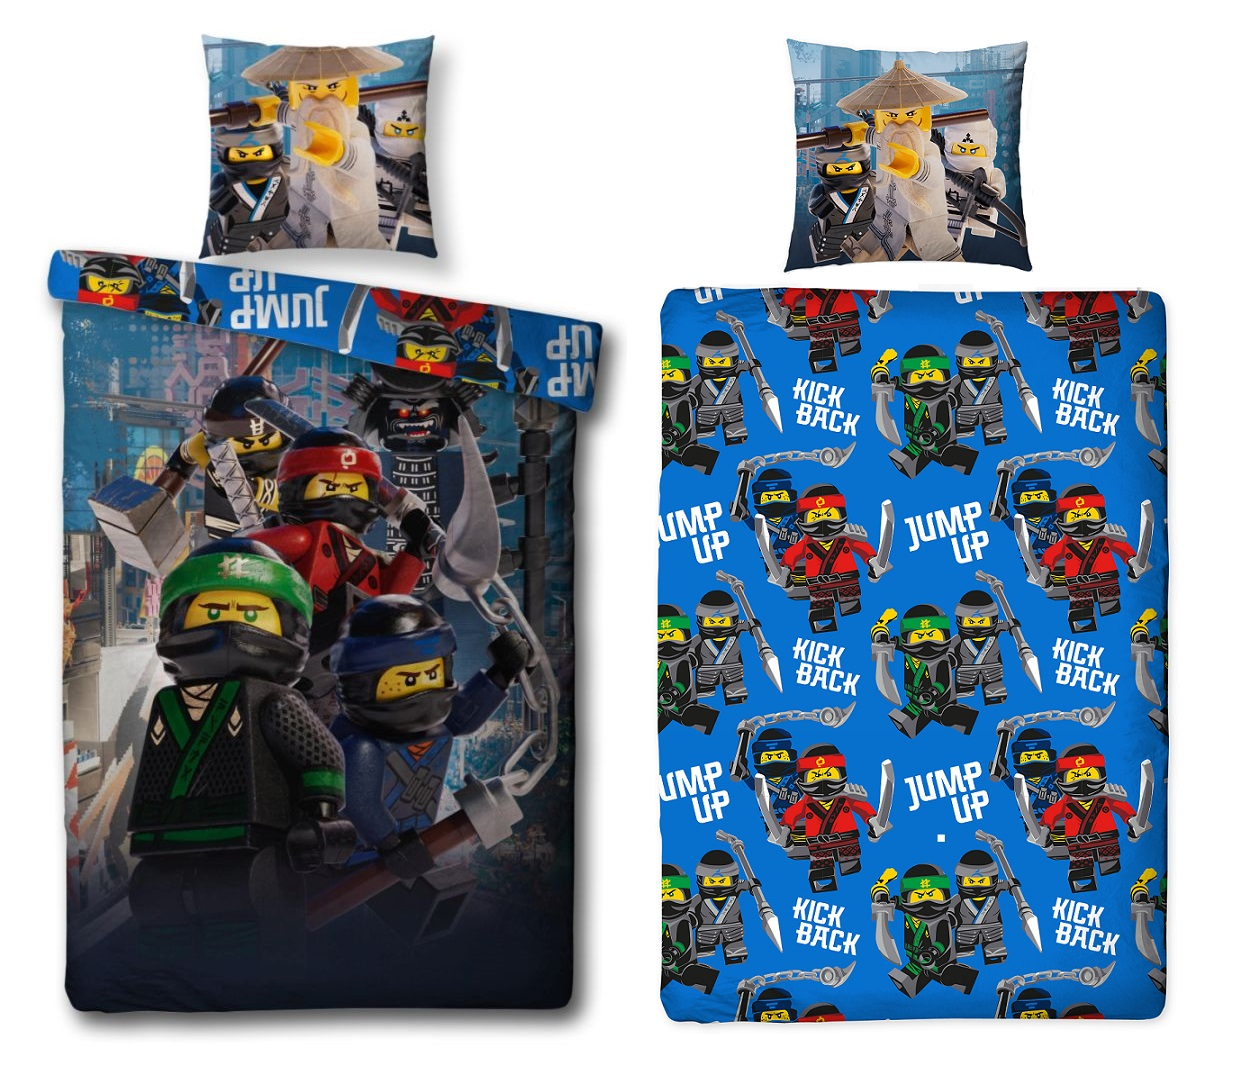 auswahl lego ninjago movie bettw sche linon biber flanell 135x200 80x80 badetuch ebay. Black Bedroom Furniture Sets. Home Design Ideas